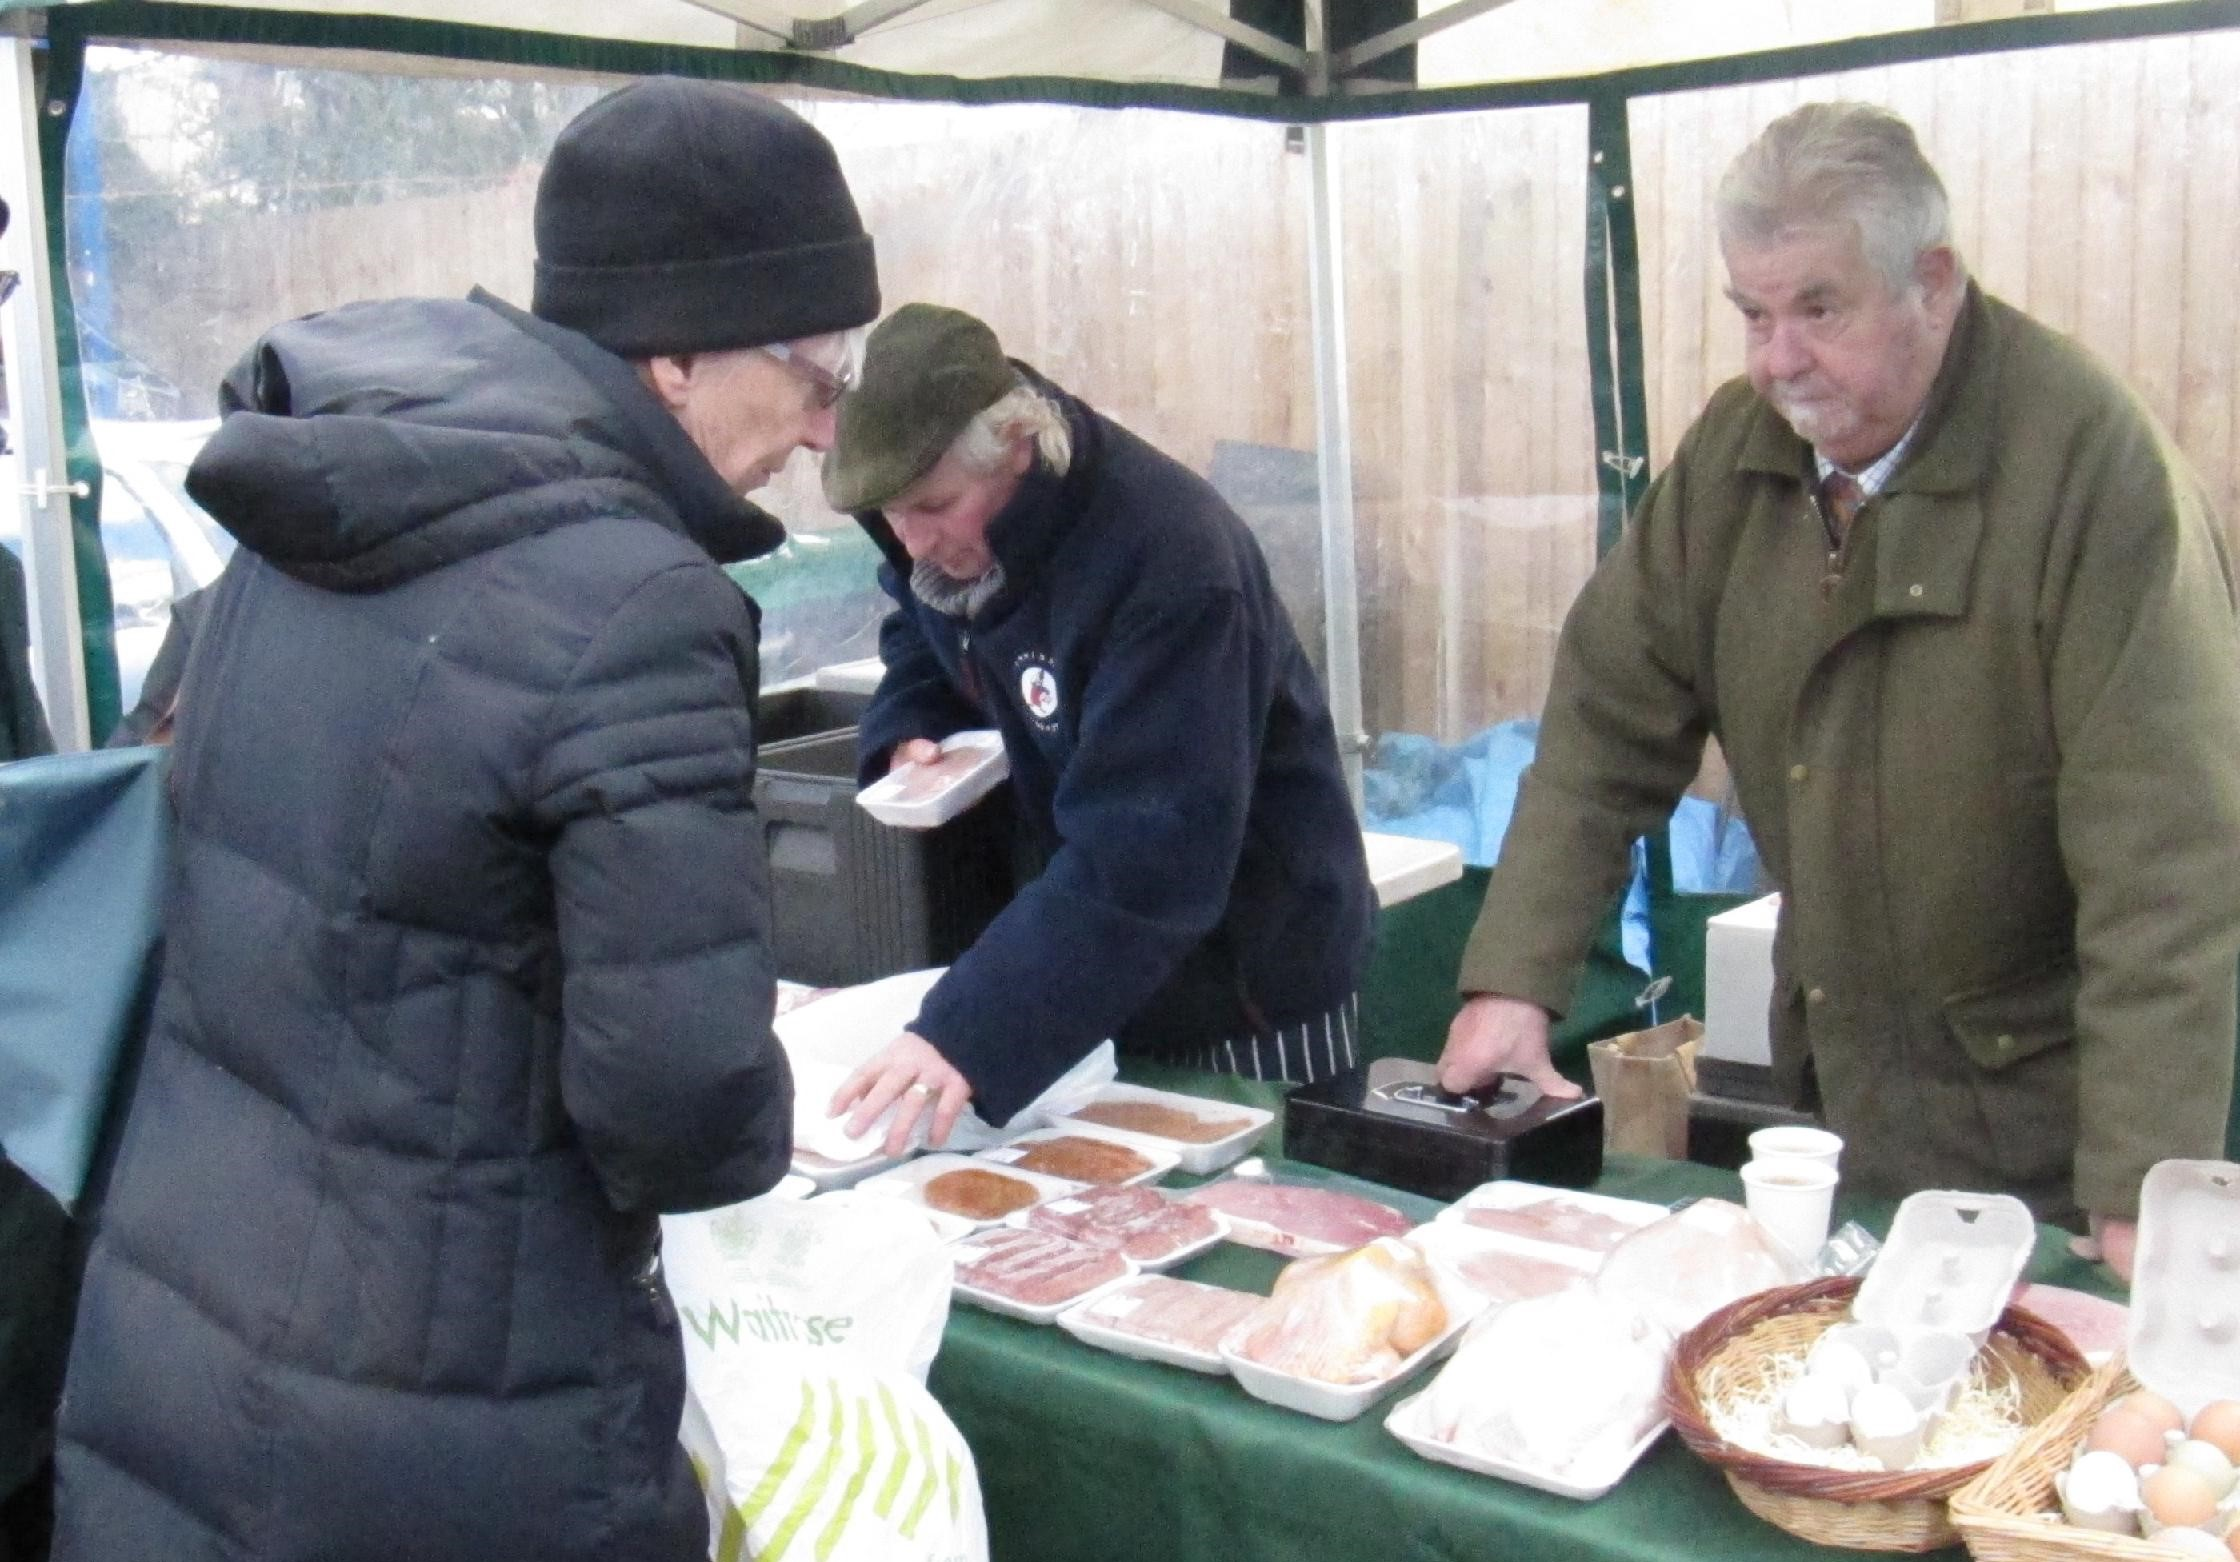 Lenny, a farmer from Cheshunt, sells meat & poultry in Barnet Market